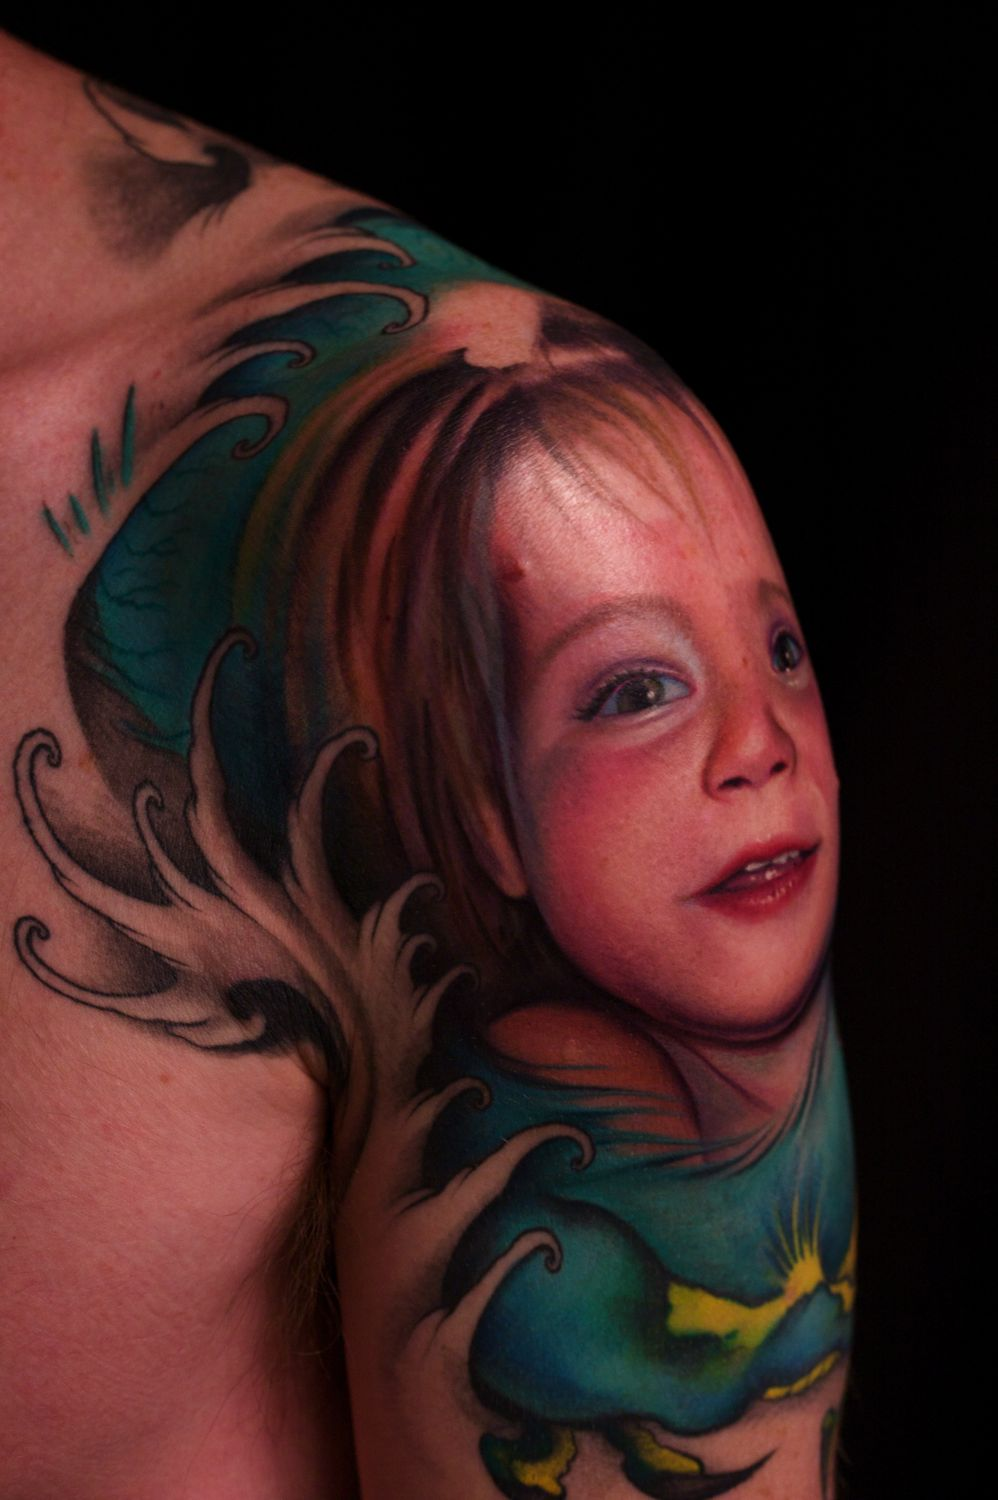 Portrait Sleeve Tattoo Designs: Leave Comment